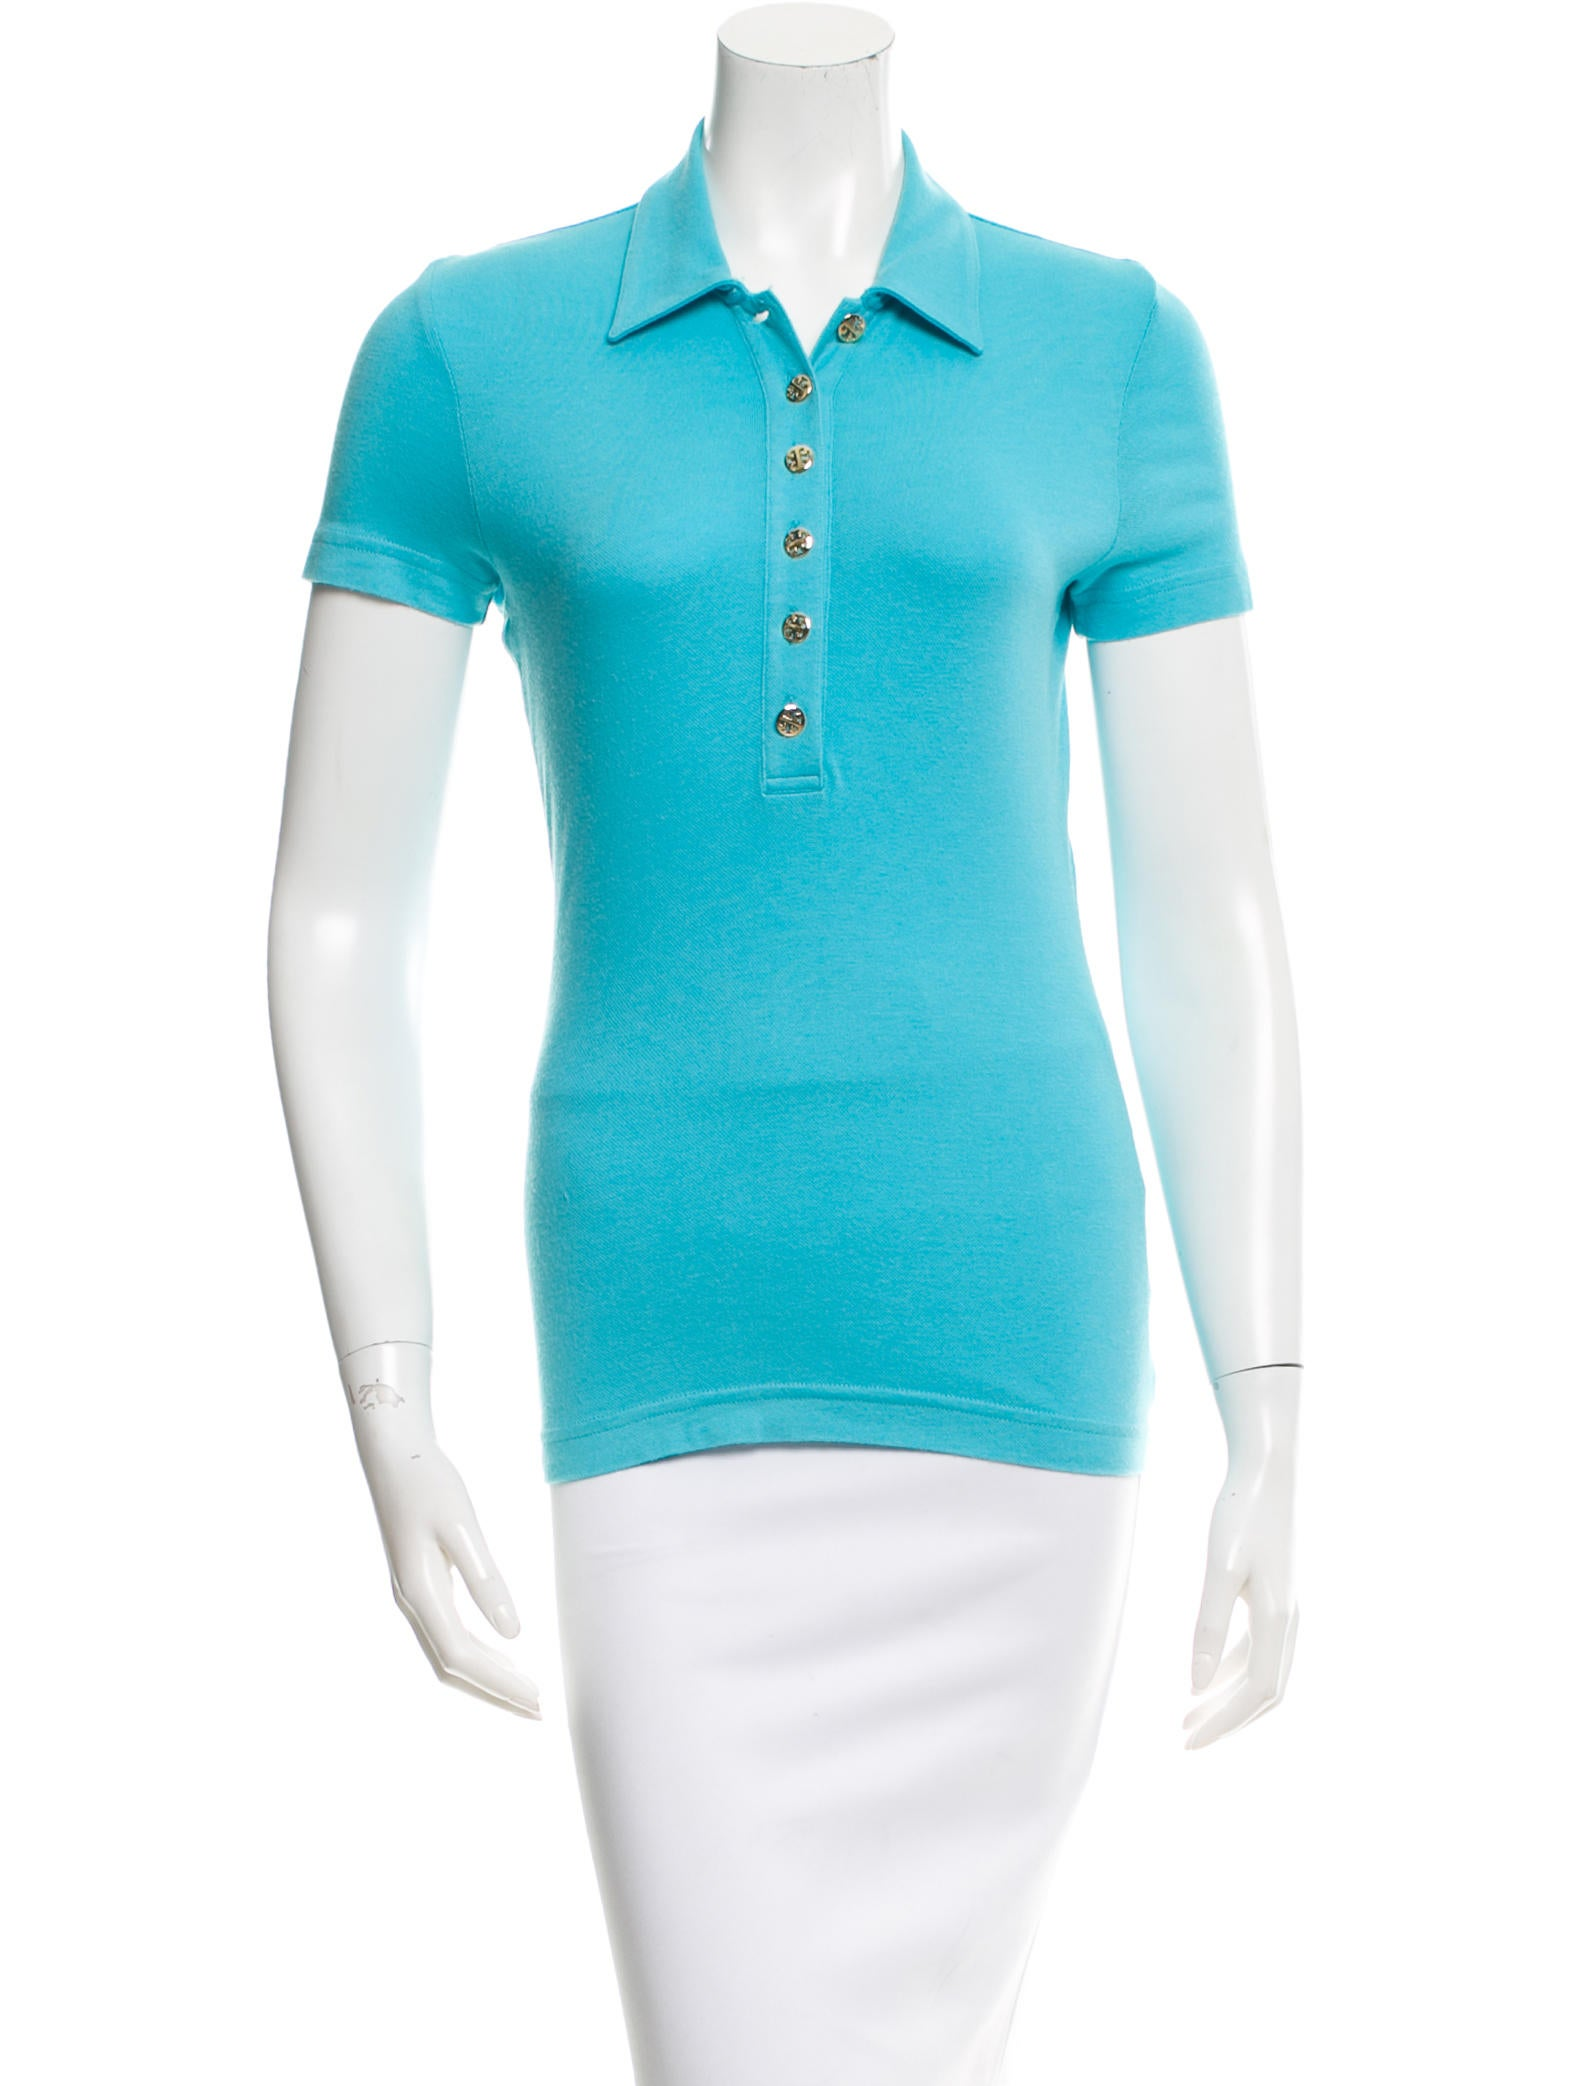 Tory burch button up polo top clothing wto68183 the for Womens button up polo shirts